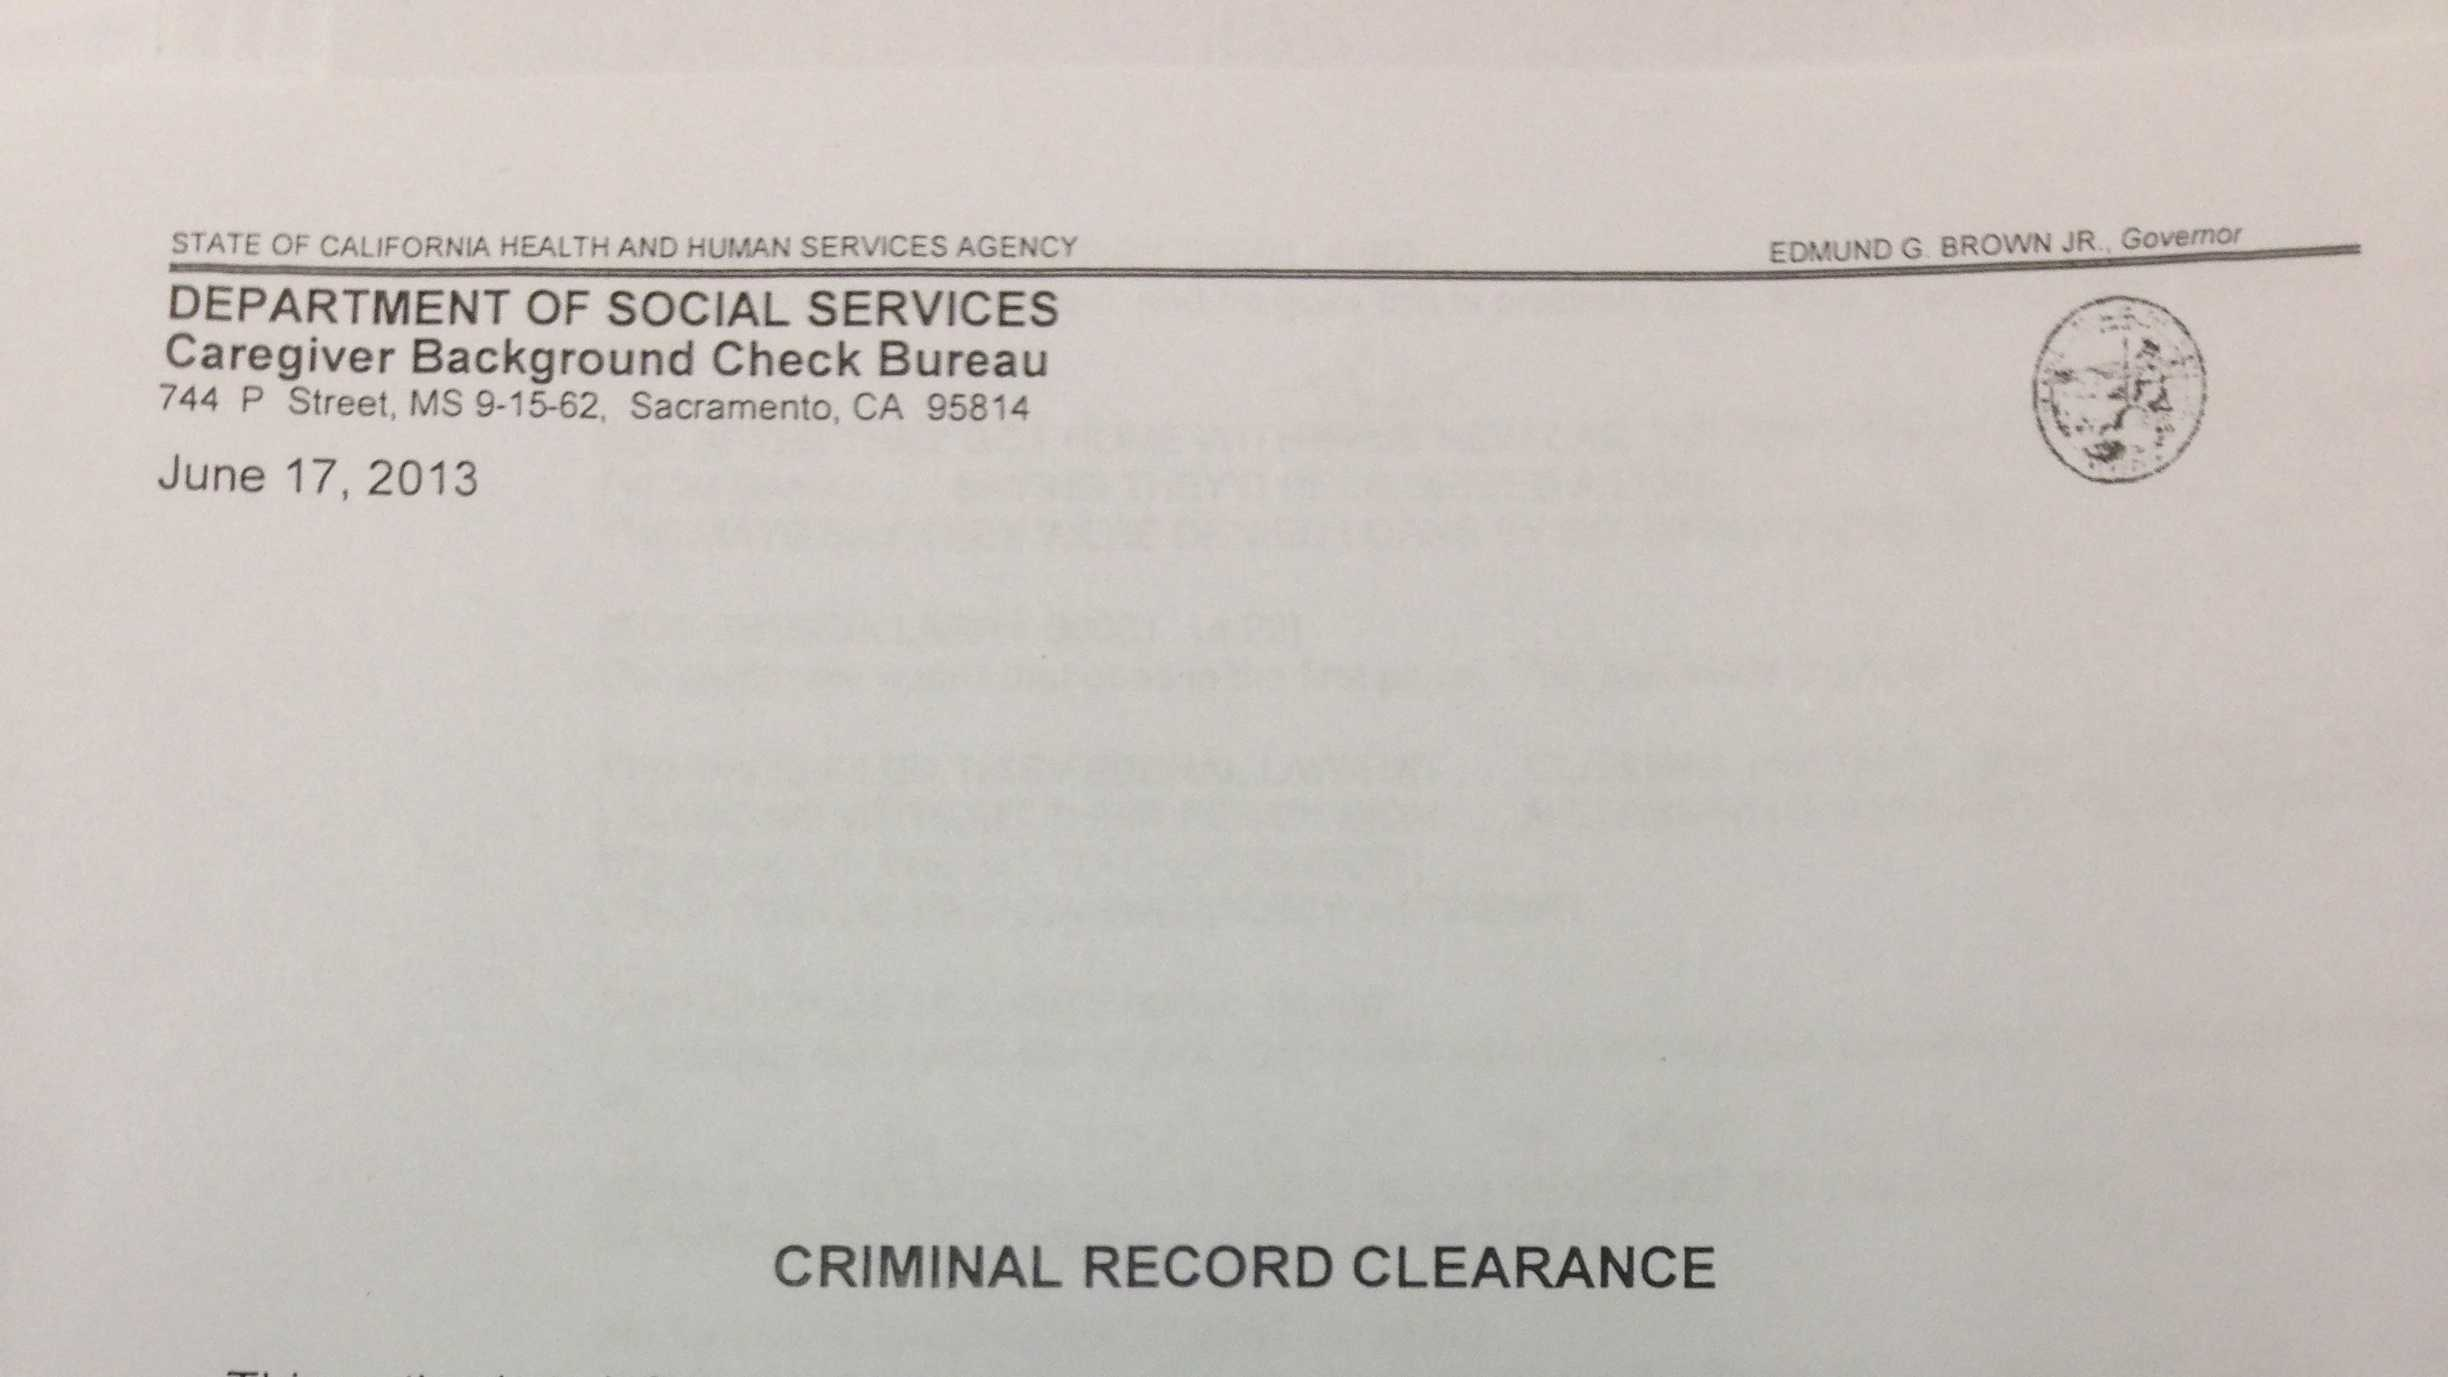 This is a copy of a blank letter sent by the California Department of Social Services' background check department. The department's policy has been to send these letters, clearing individuals to work prior to completing their investigations into arrests.